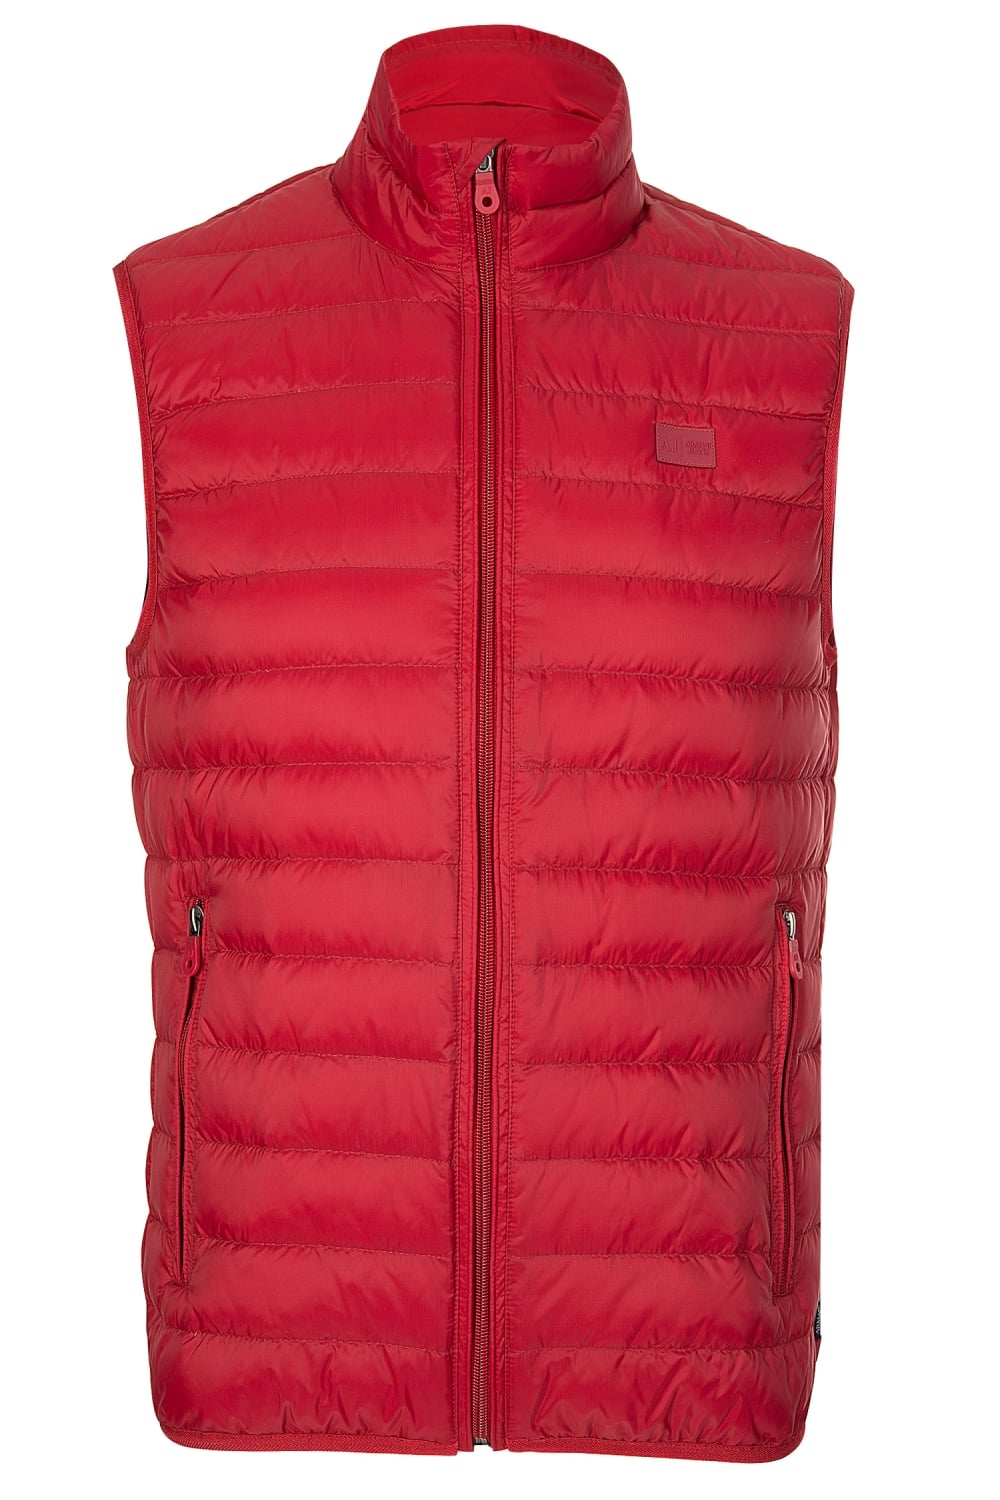 ARMANI Armani Jeans Down Gilet Red - Clothing from Circle Fashion UK 31bf52549431